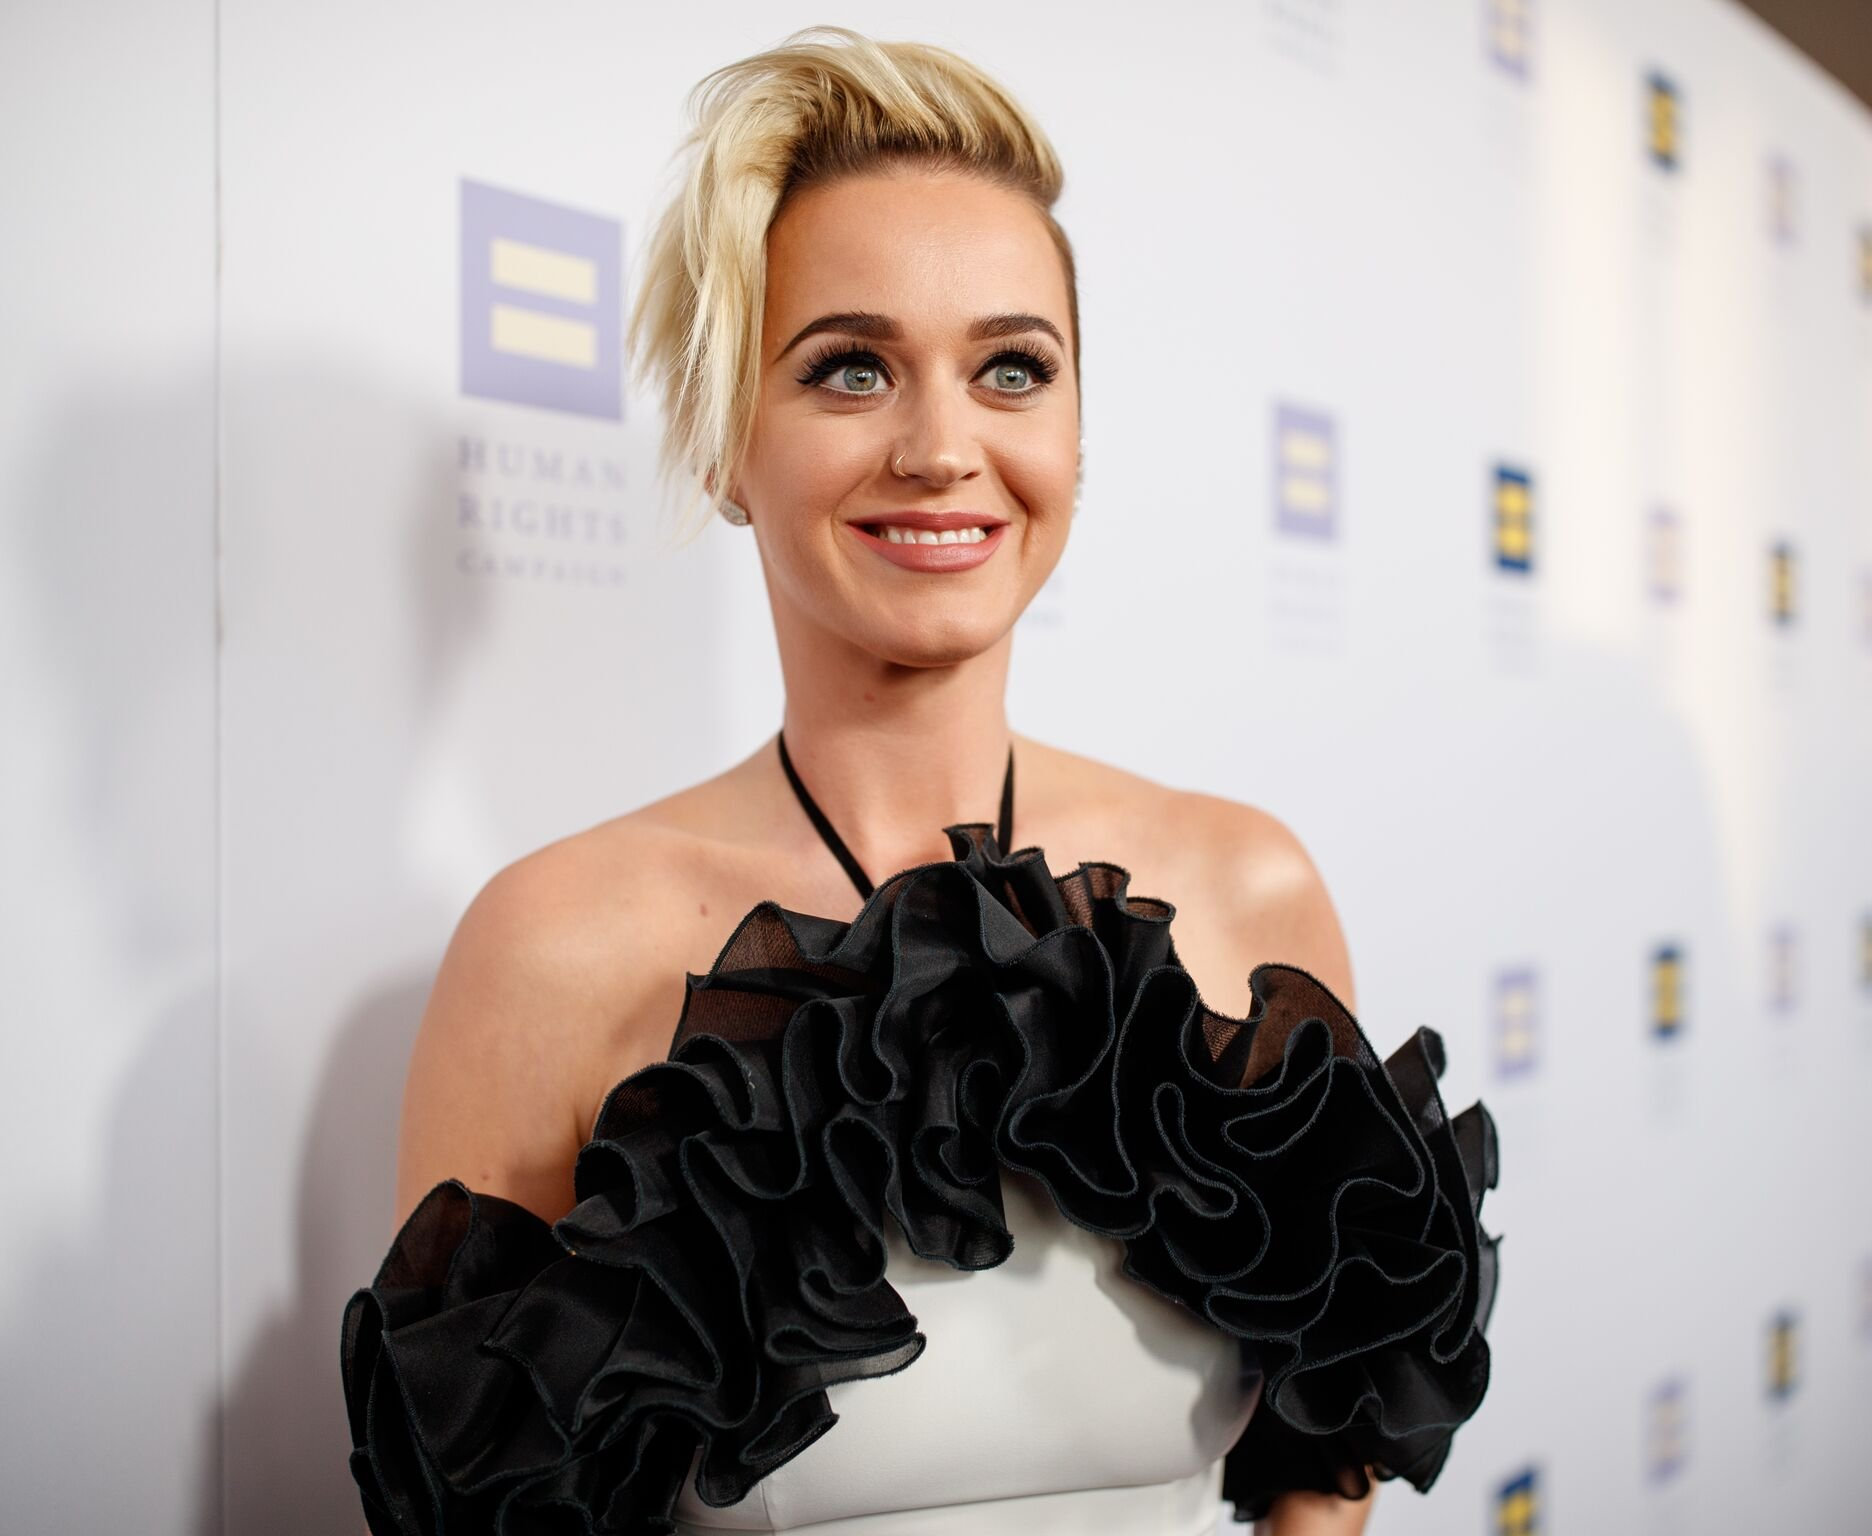 Singer Katy Perry arrives to The Human Rights Campaign 2017 Los Angeles Gala Dinner at JW Marriott Los Angeles at L.A. LIVE on March 18, 2017 | Photo: Getty Images